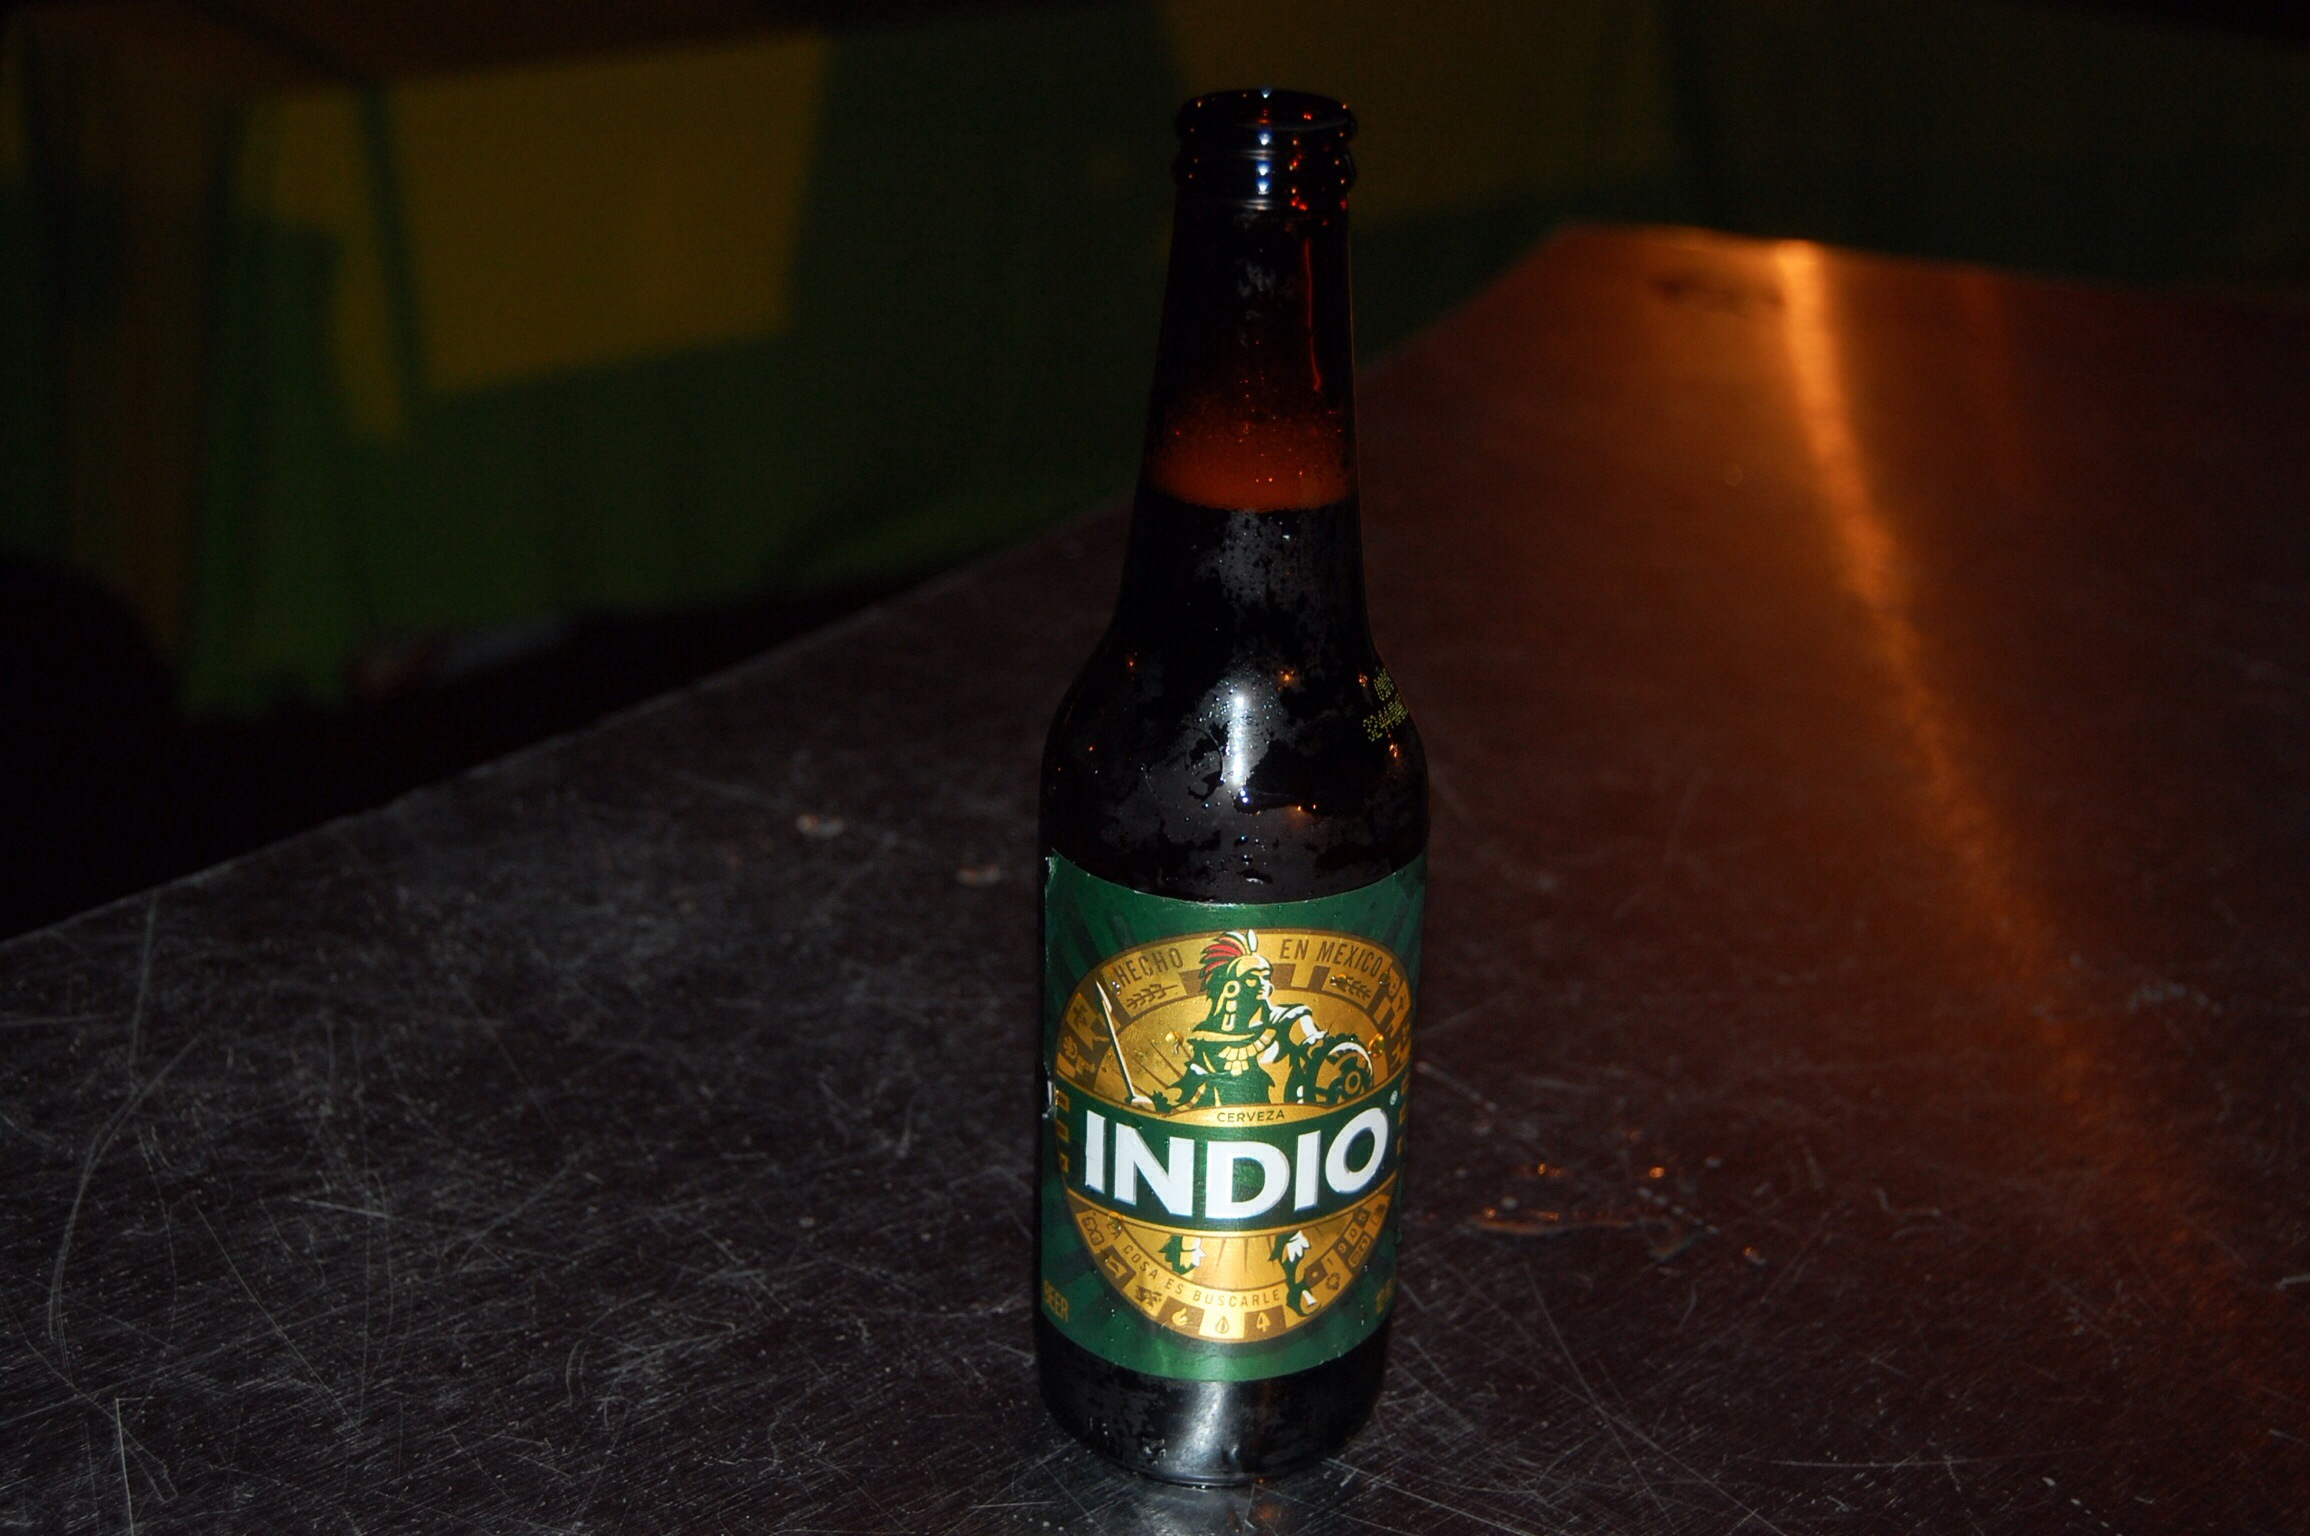 Indio Beer at The Taste of Mexico 2013